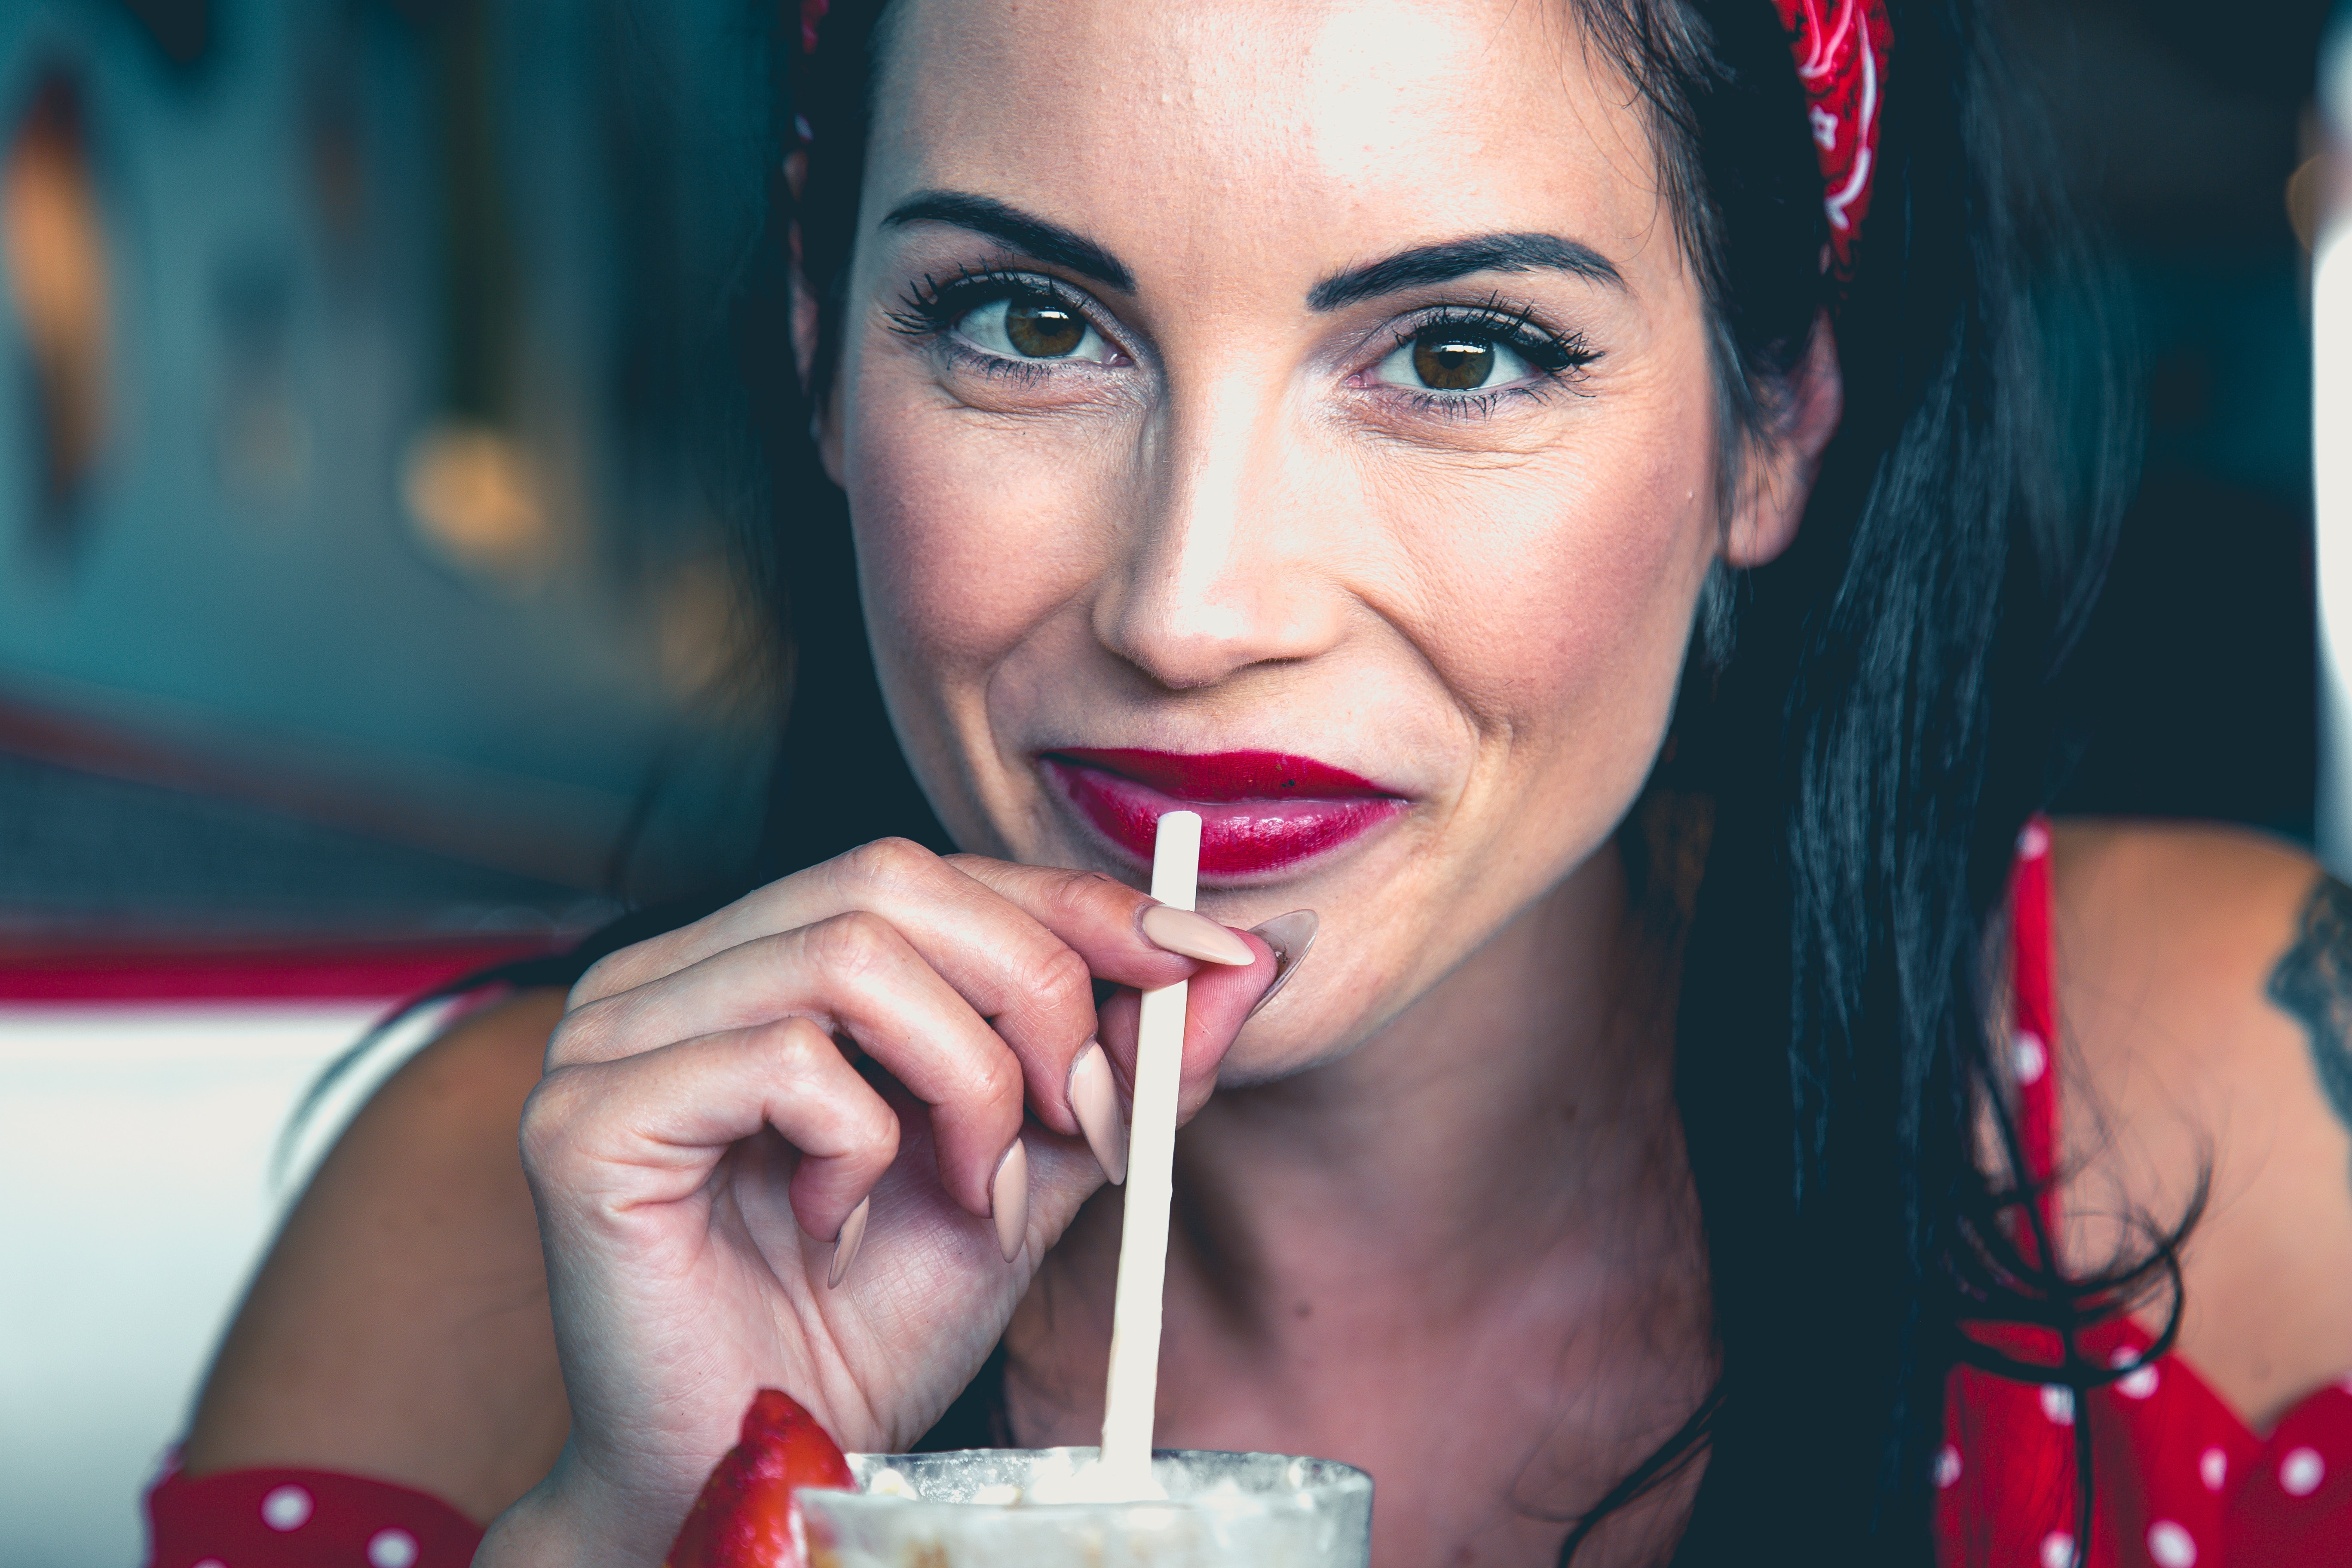 woman wearing red and white polka-dot top holding straw close-up photo